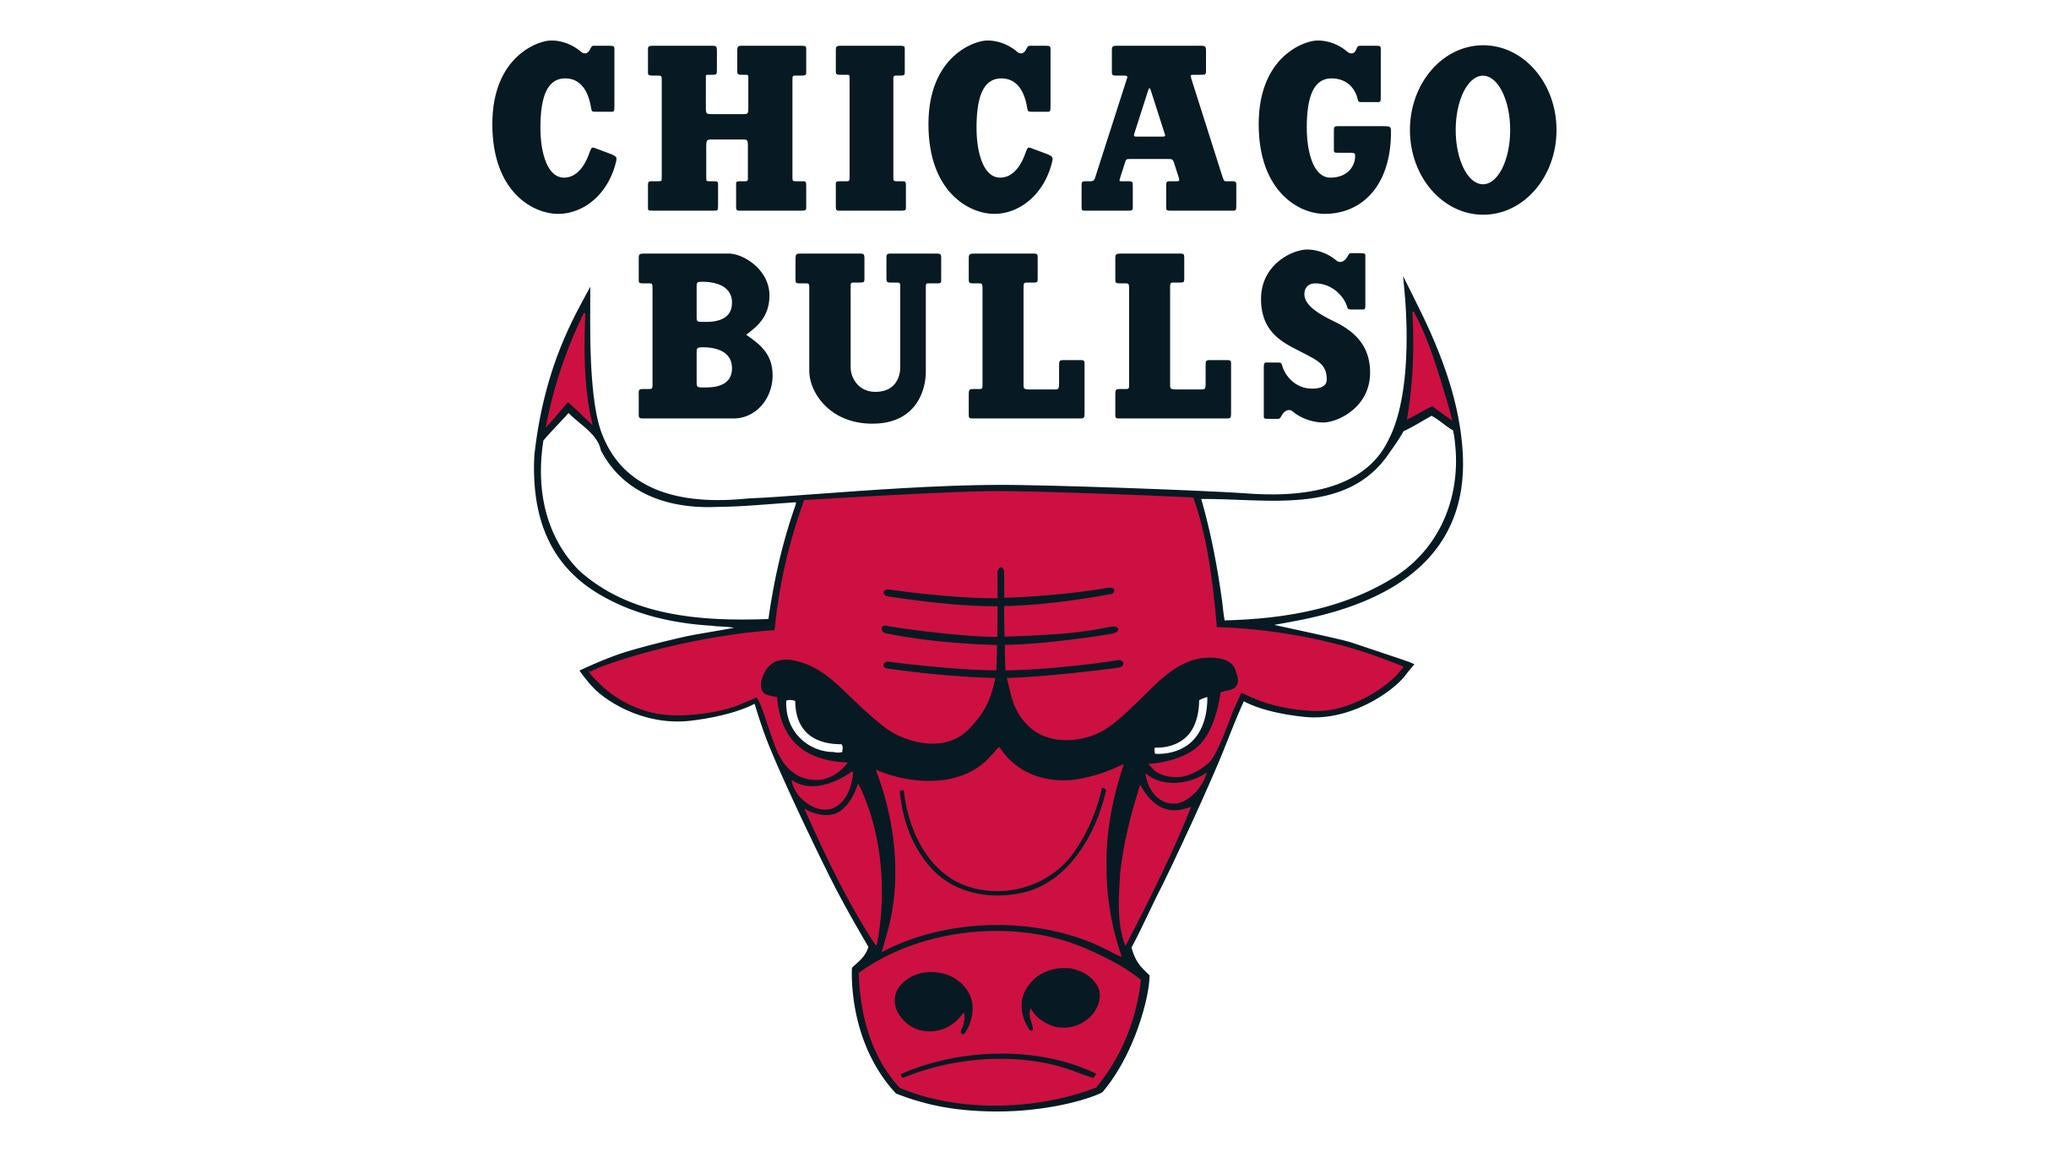 Chicago Bulls vs. Minnesota Timberwolves at United Center - Chicago, IL 60612